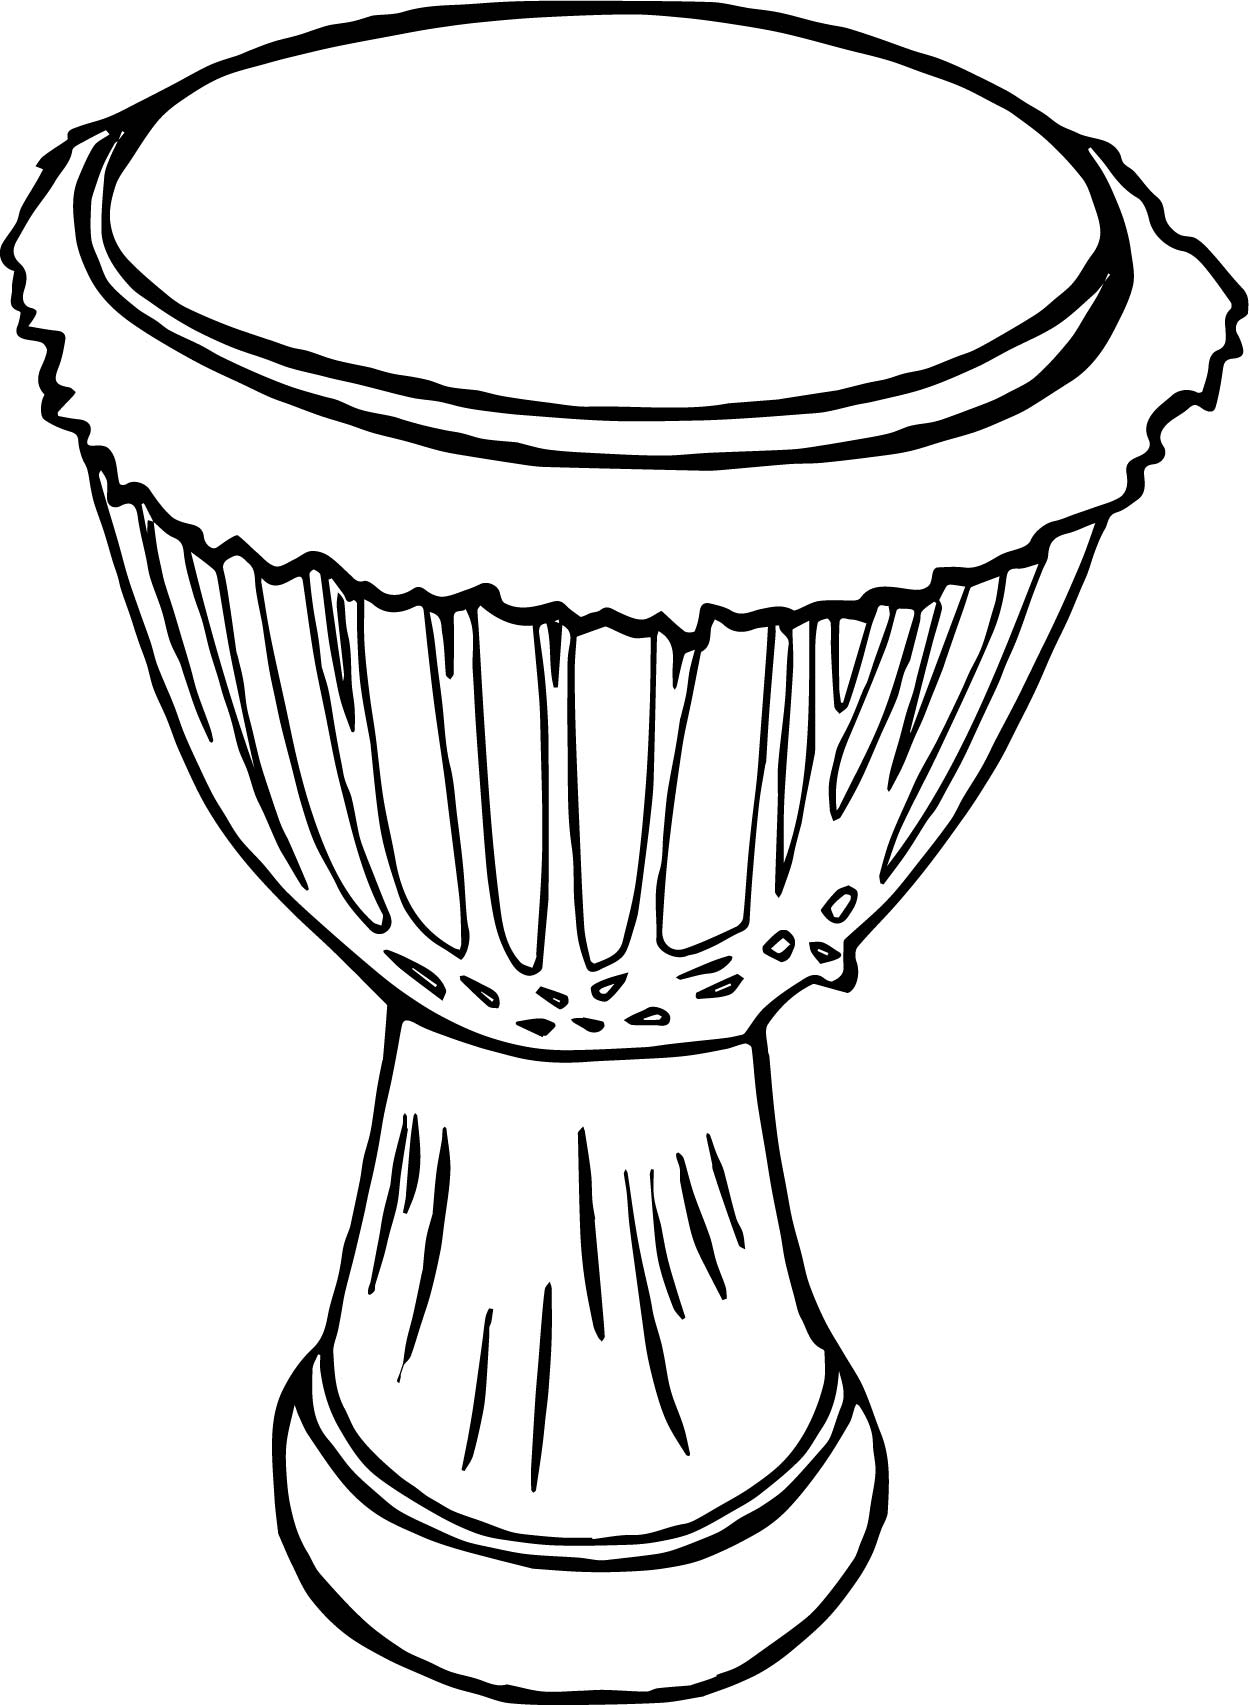 African clipart drum african.  collection of drums